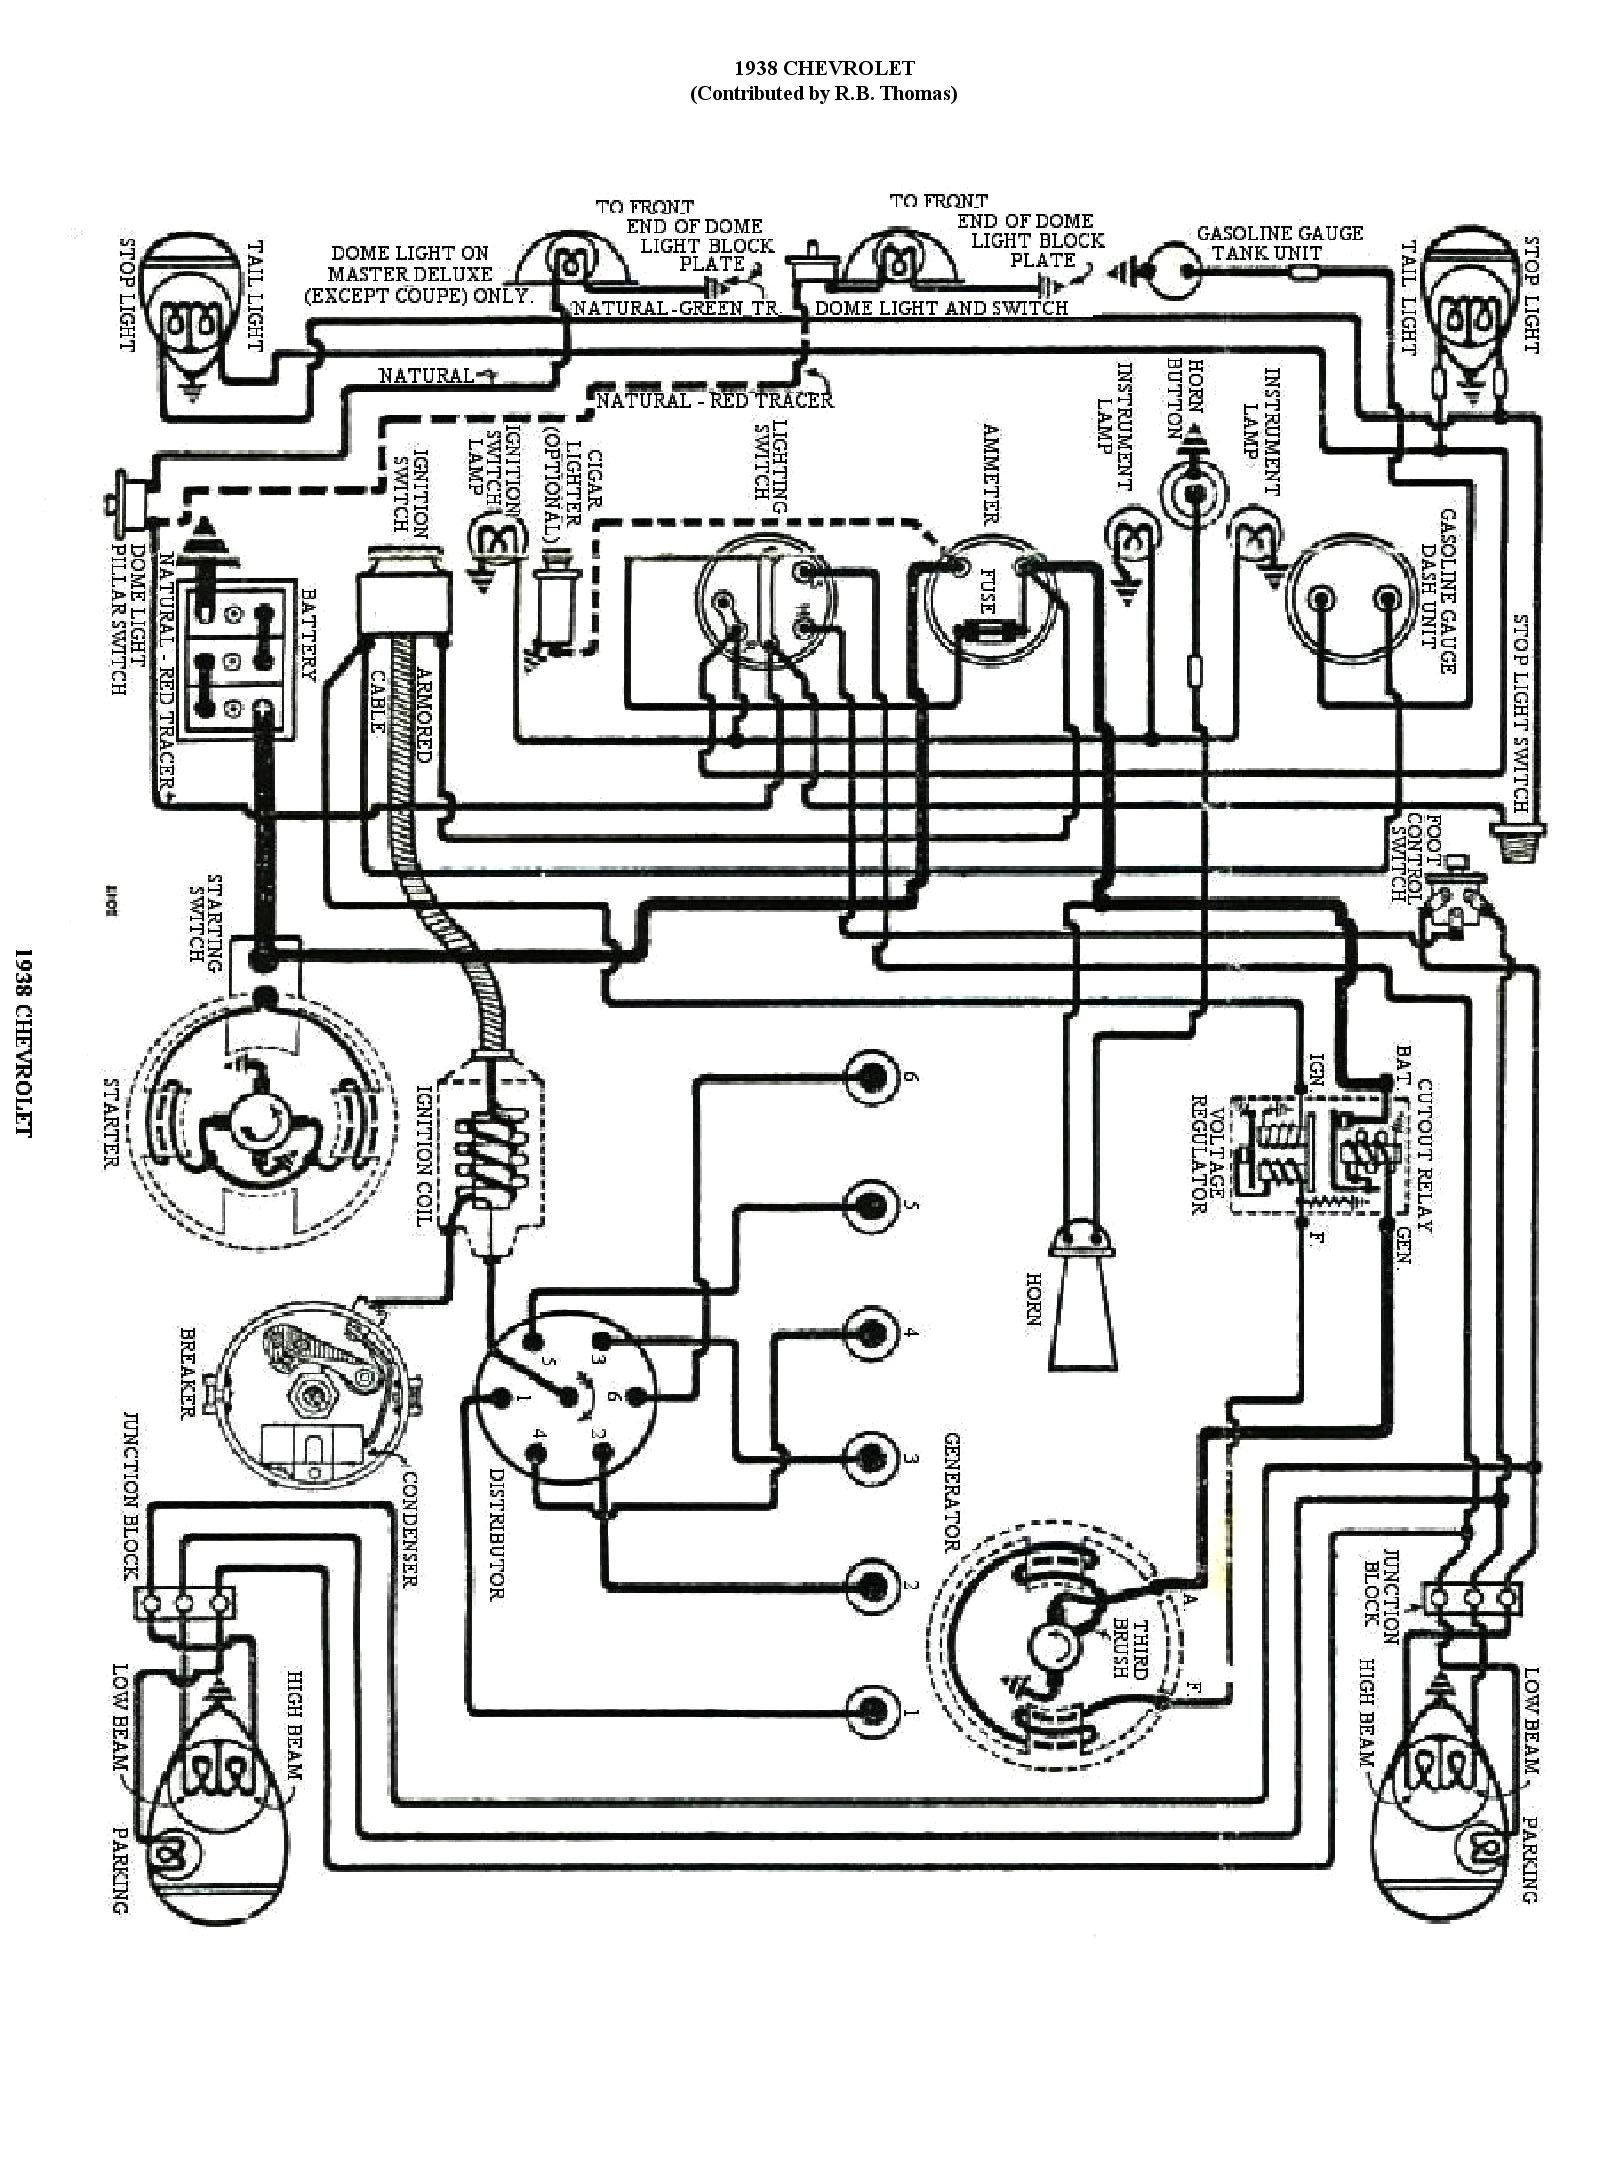 chevy wiring diagrams Chevy Solenoid Wiring Diagram 1938 wiring